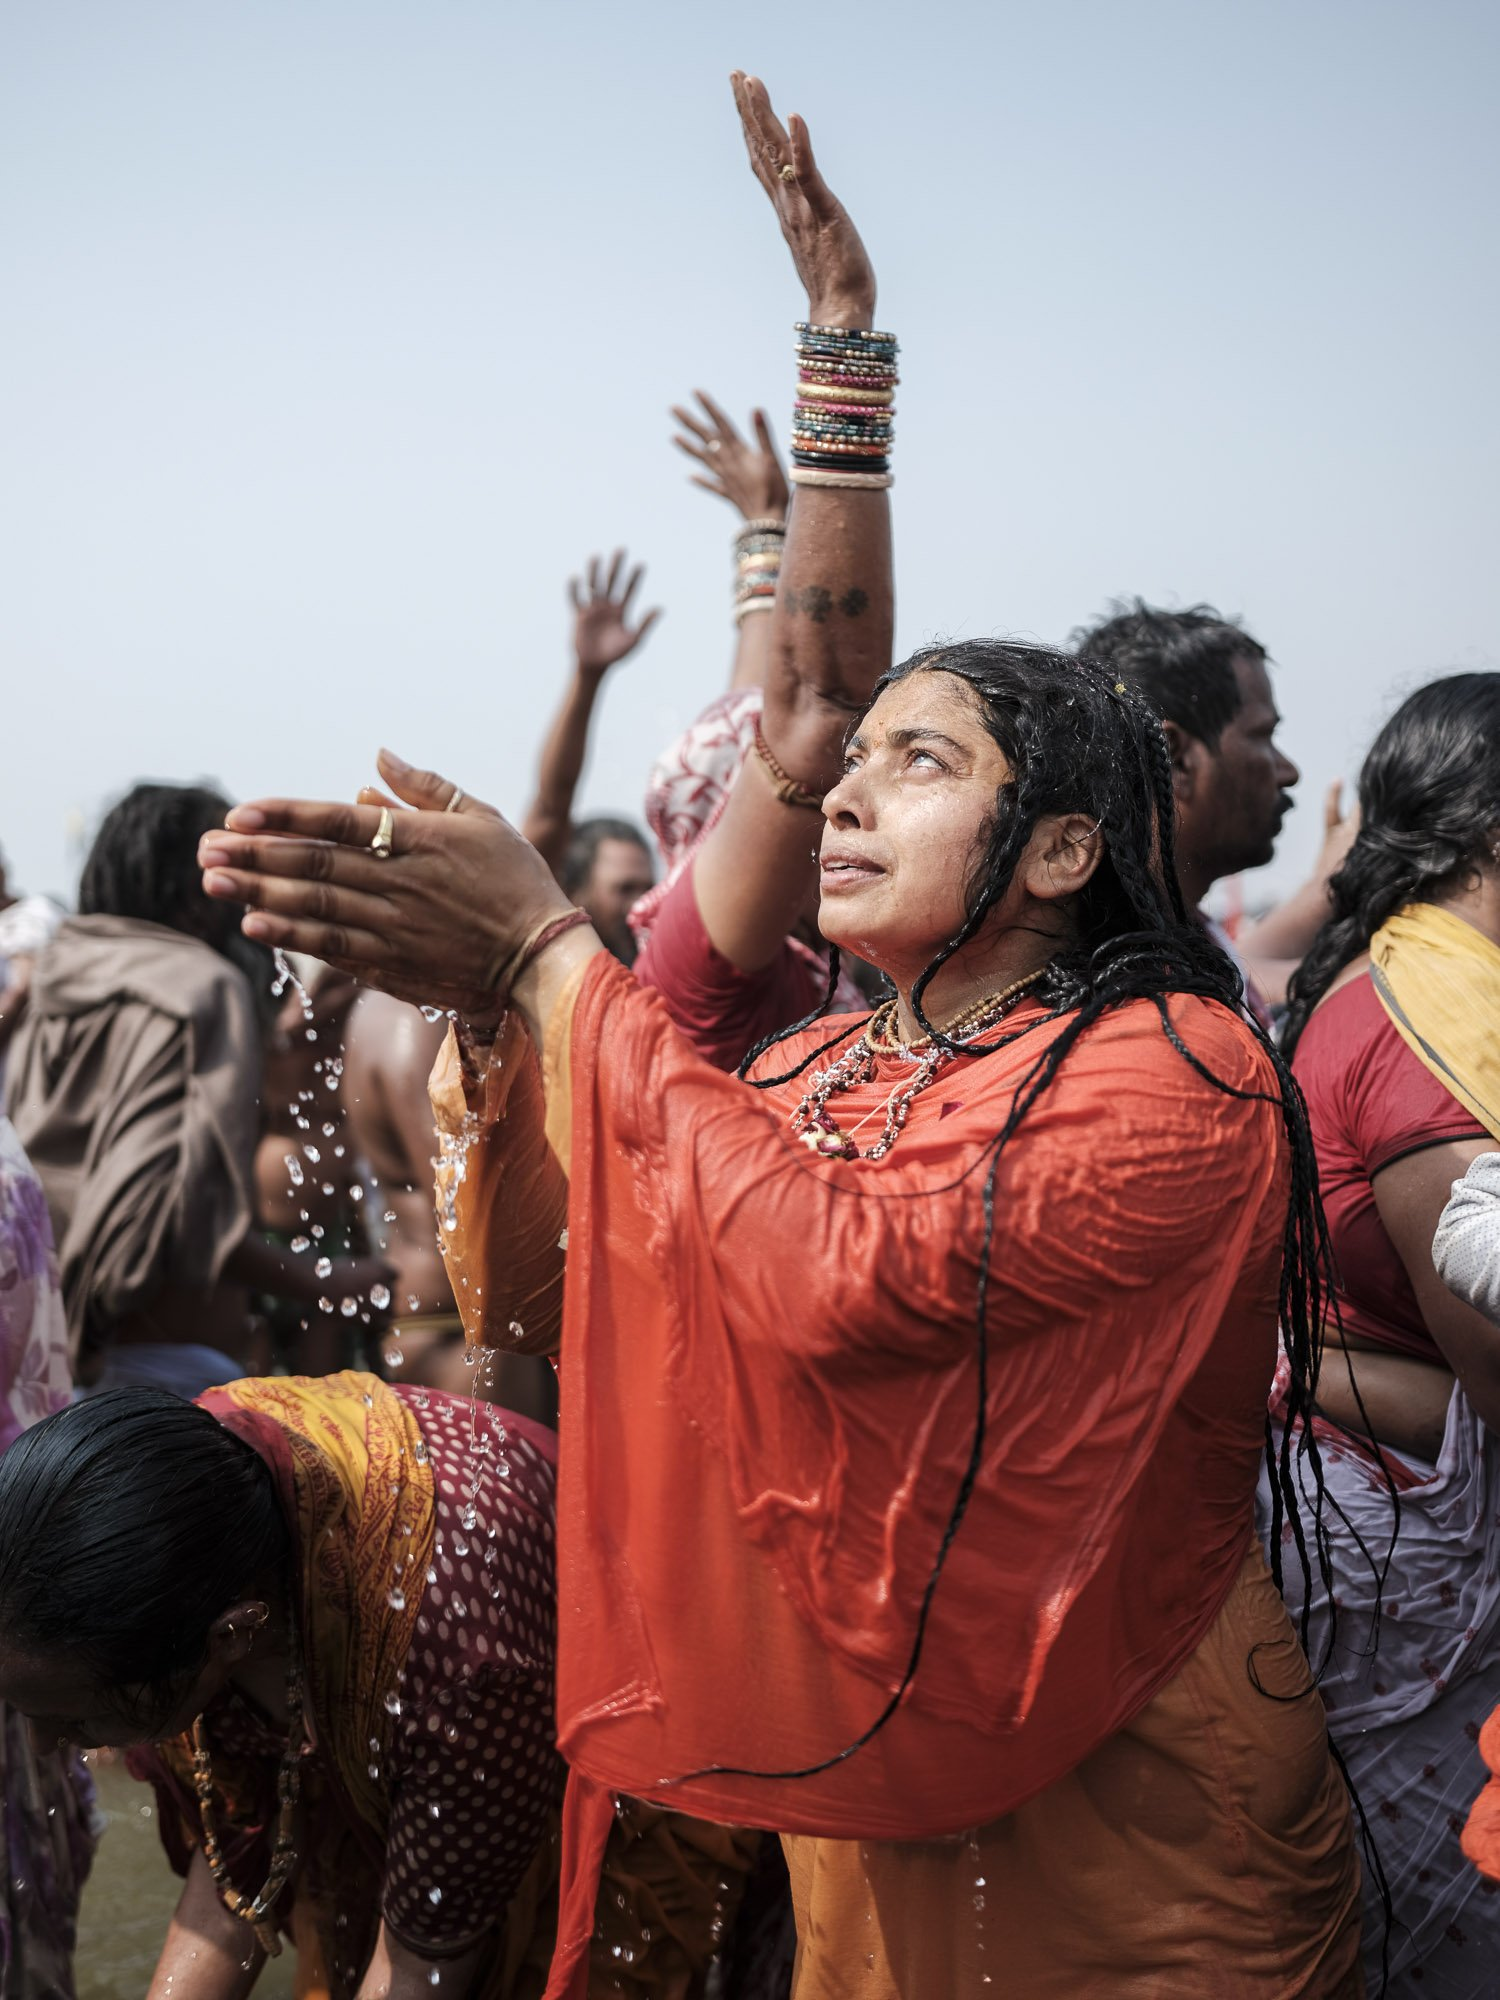 woman prayer in the water pilgrims Kumbh mela 2019 India Allahabad Prayagraj Ardh hindu religious Festival event rivers photographer jose jeuland photography